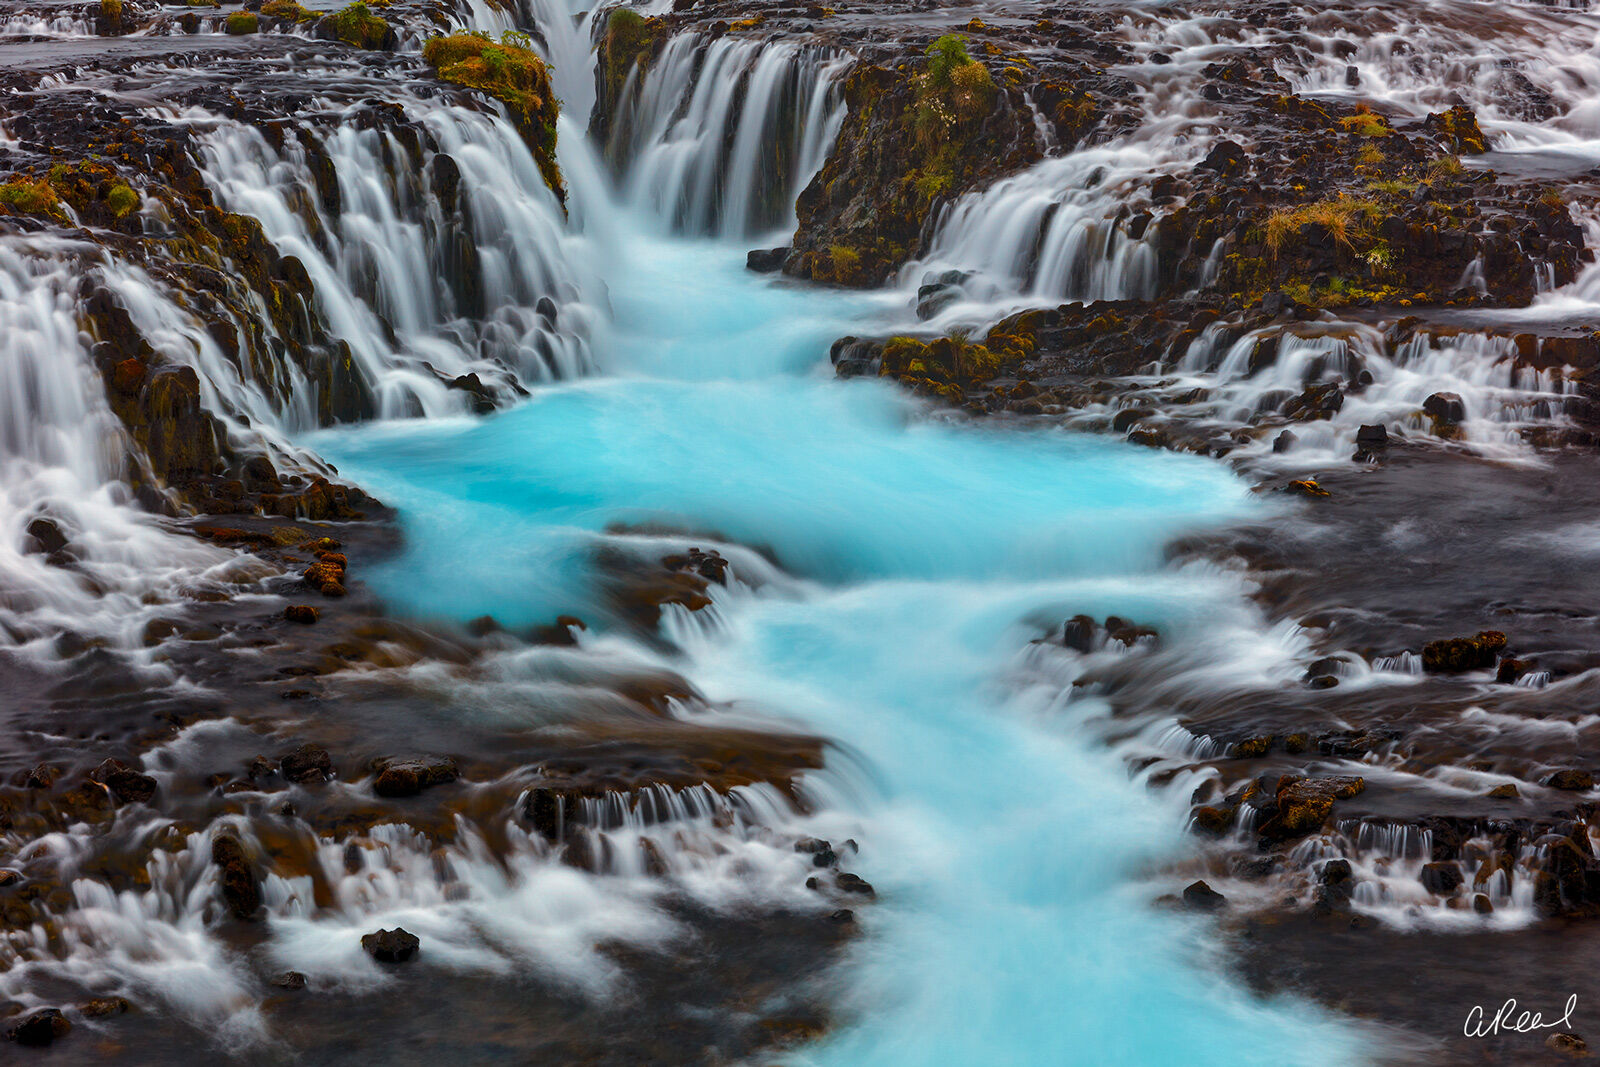 Transform your space with Aaron Reed's limited edition photography print, Aquamarine, from his Iceland Nature Photography collection...